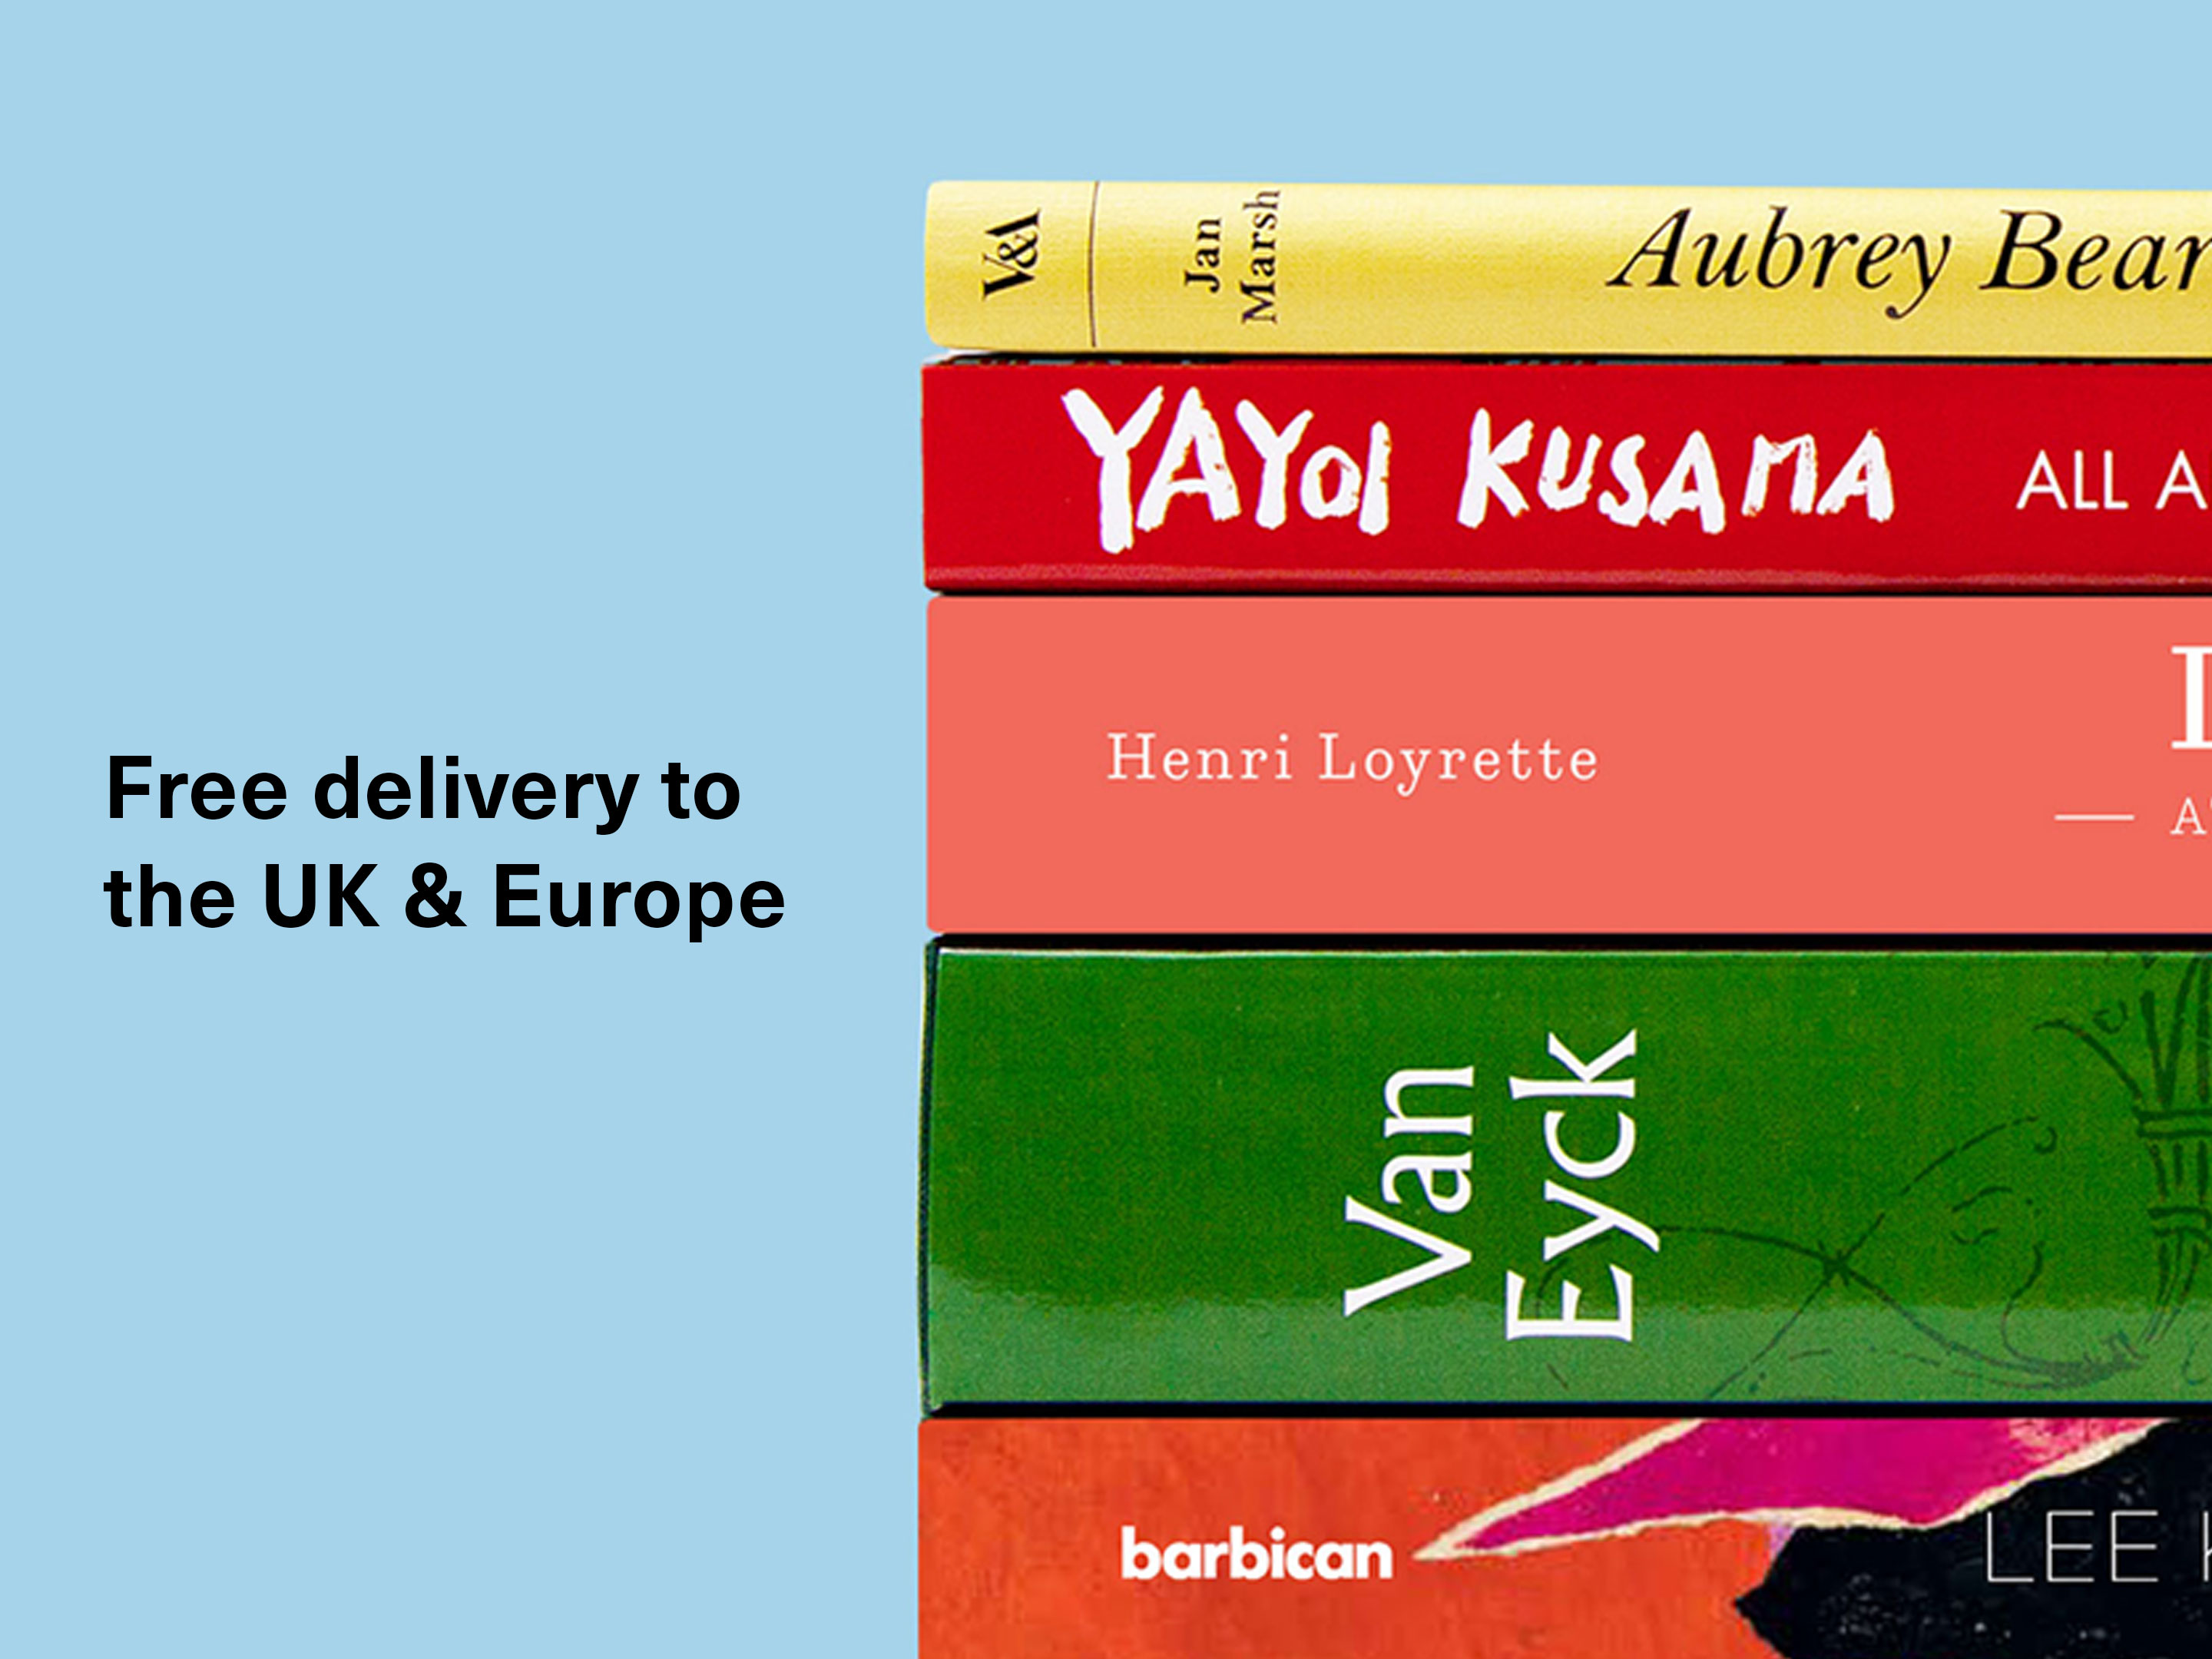 Receive your books to your door at no extra cost